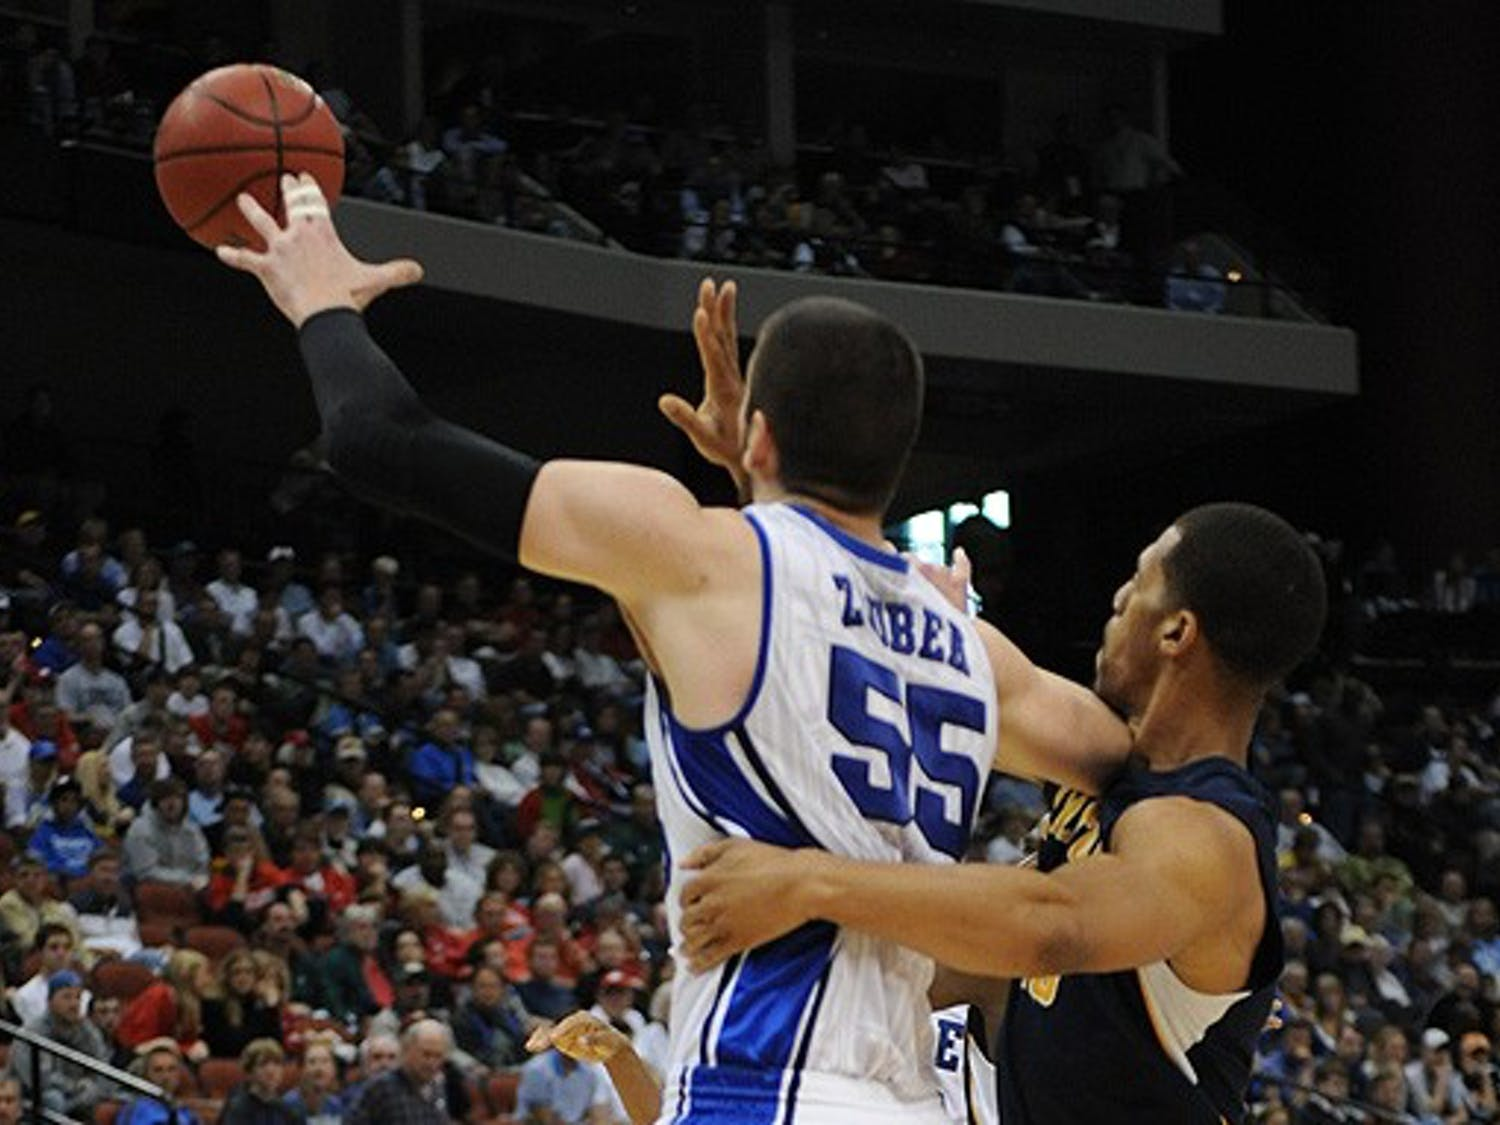 Senior Brian Zoubek would have to contend with big man Omar Samhan if Duke faces St. Mary's in the Elite Eight.